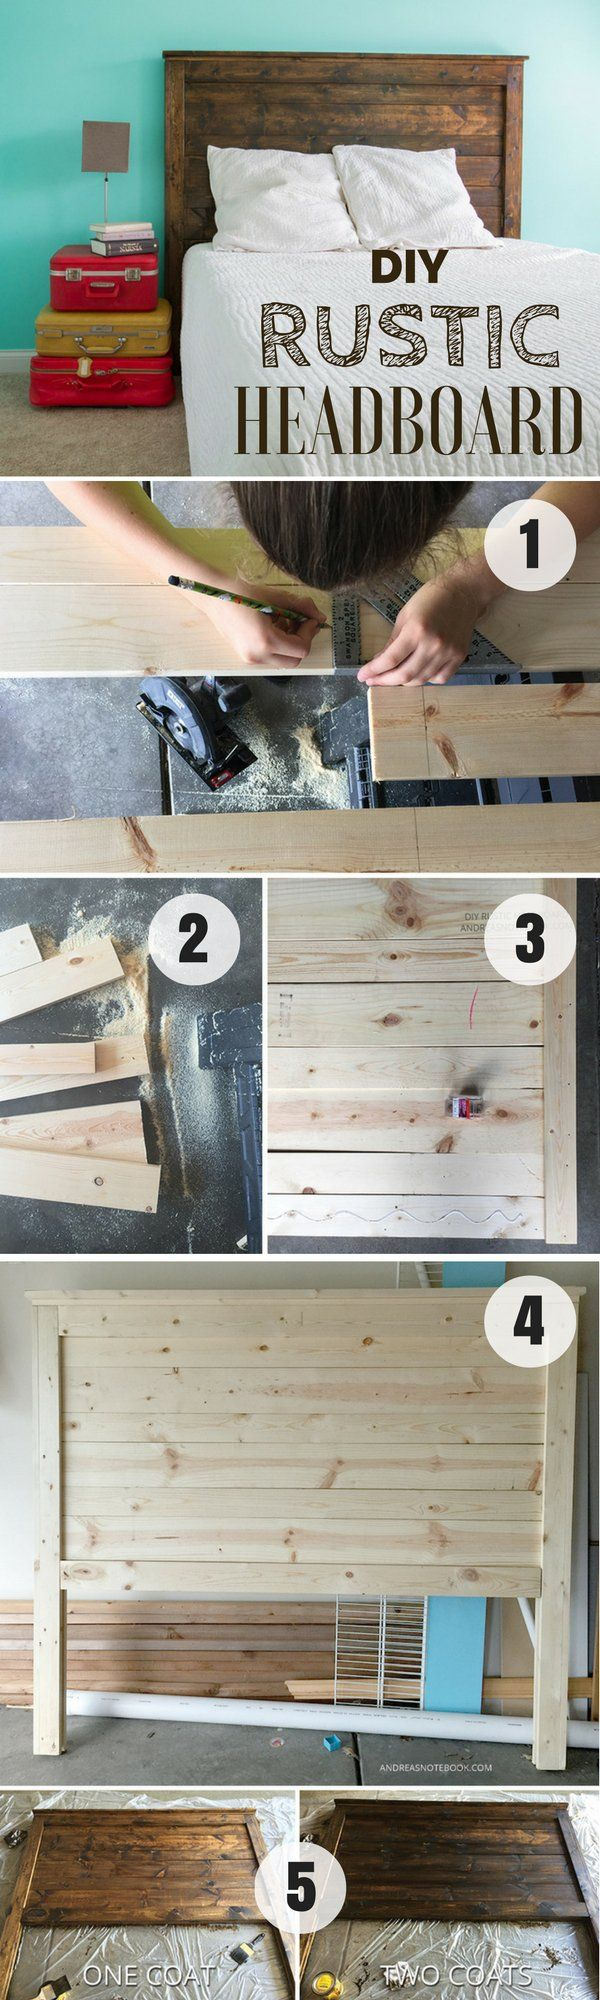 Check out how to build this easy DIY Rustic Headboard @istandarddesign